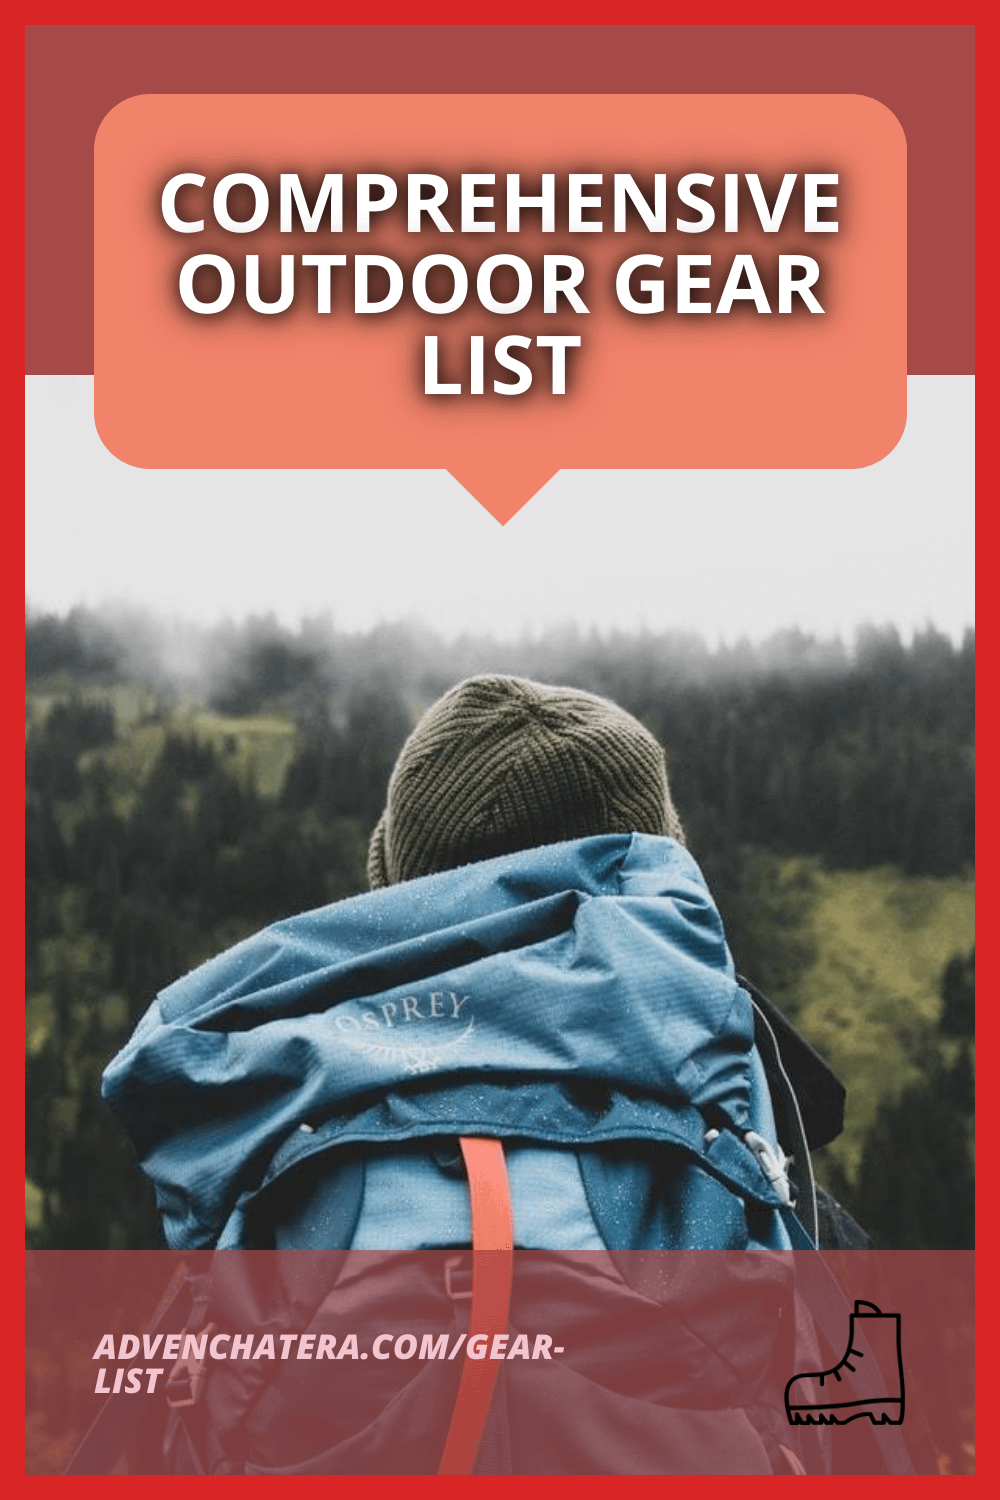 Keeping track of gear needed for camping, hiking and backpacking can be challenging. I learned through experience what I need and don't need for my 3-season trips. I compiled a list all in one place of everything I use personally so that it's easy for you to find! I also have some separate posts about hiking and backpacking gear specifically, but I wanted to make a comprehensive list all in one place to make it easy. #hike #camp #outdoors via @advenchatera via @advenchatera